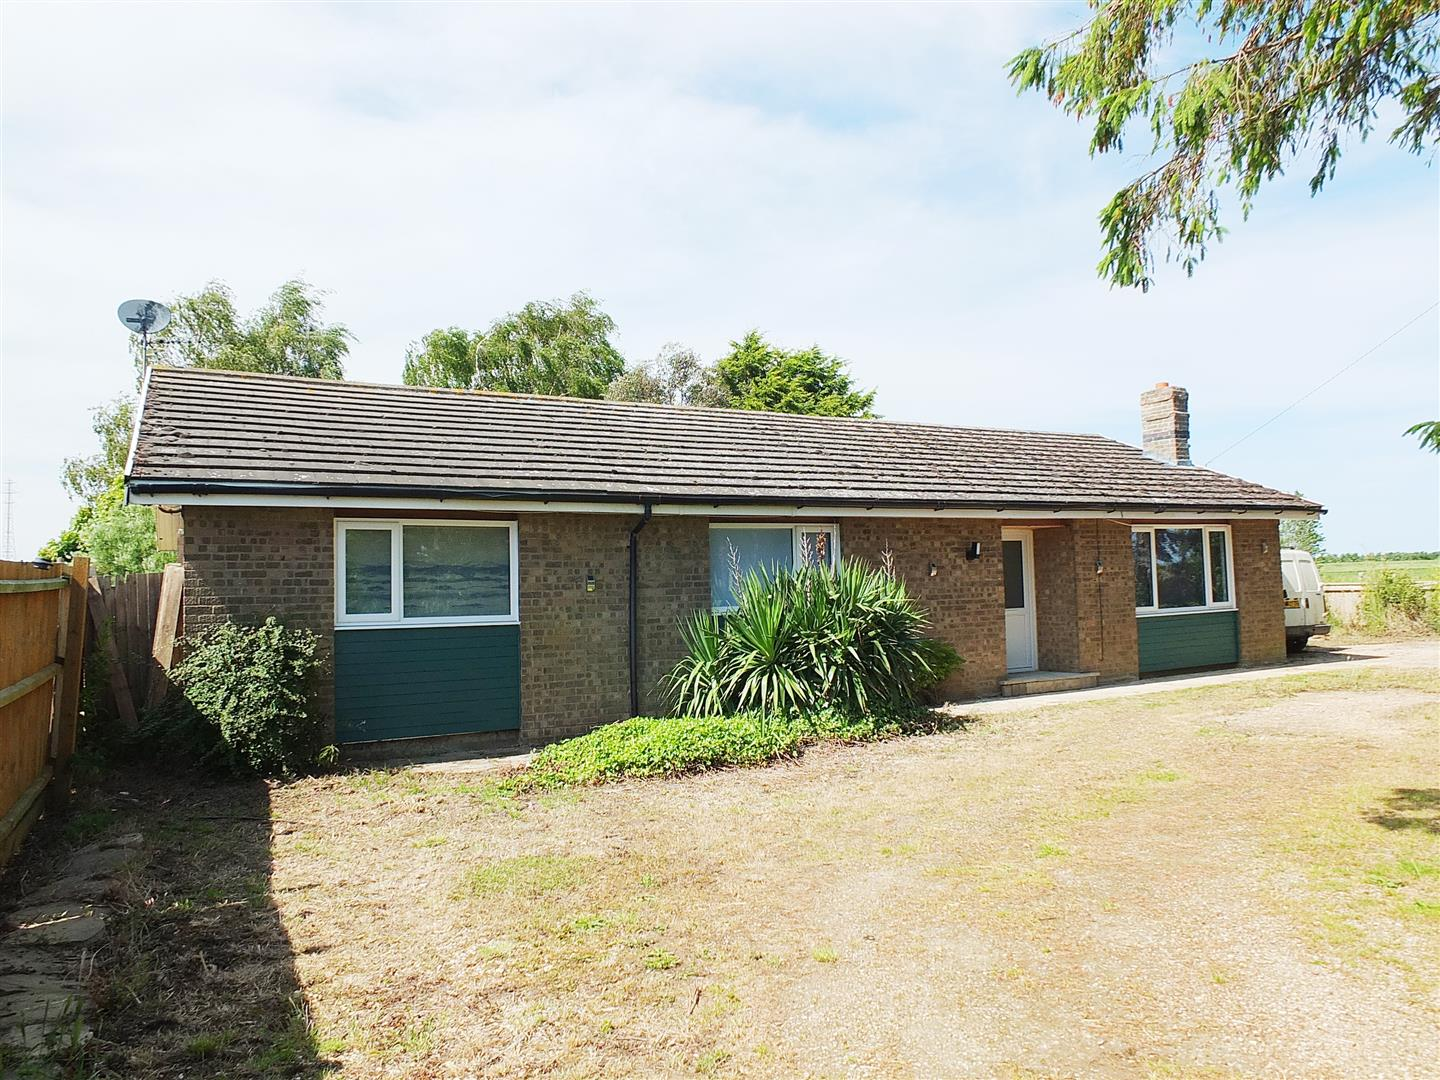 4 bed detached bungalow for sale in Moulton Marsh Spalding, PE12 6LL 0